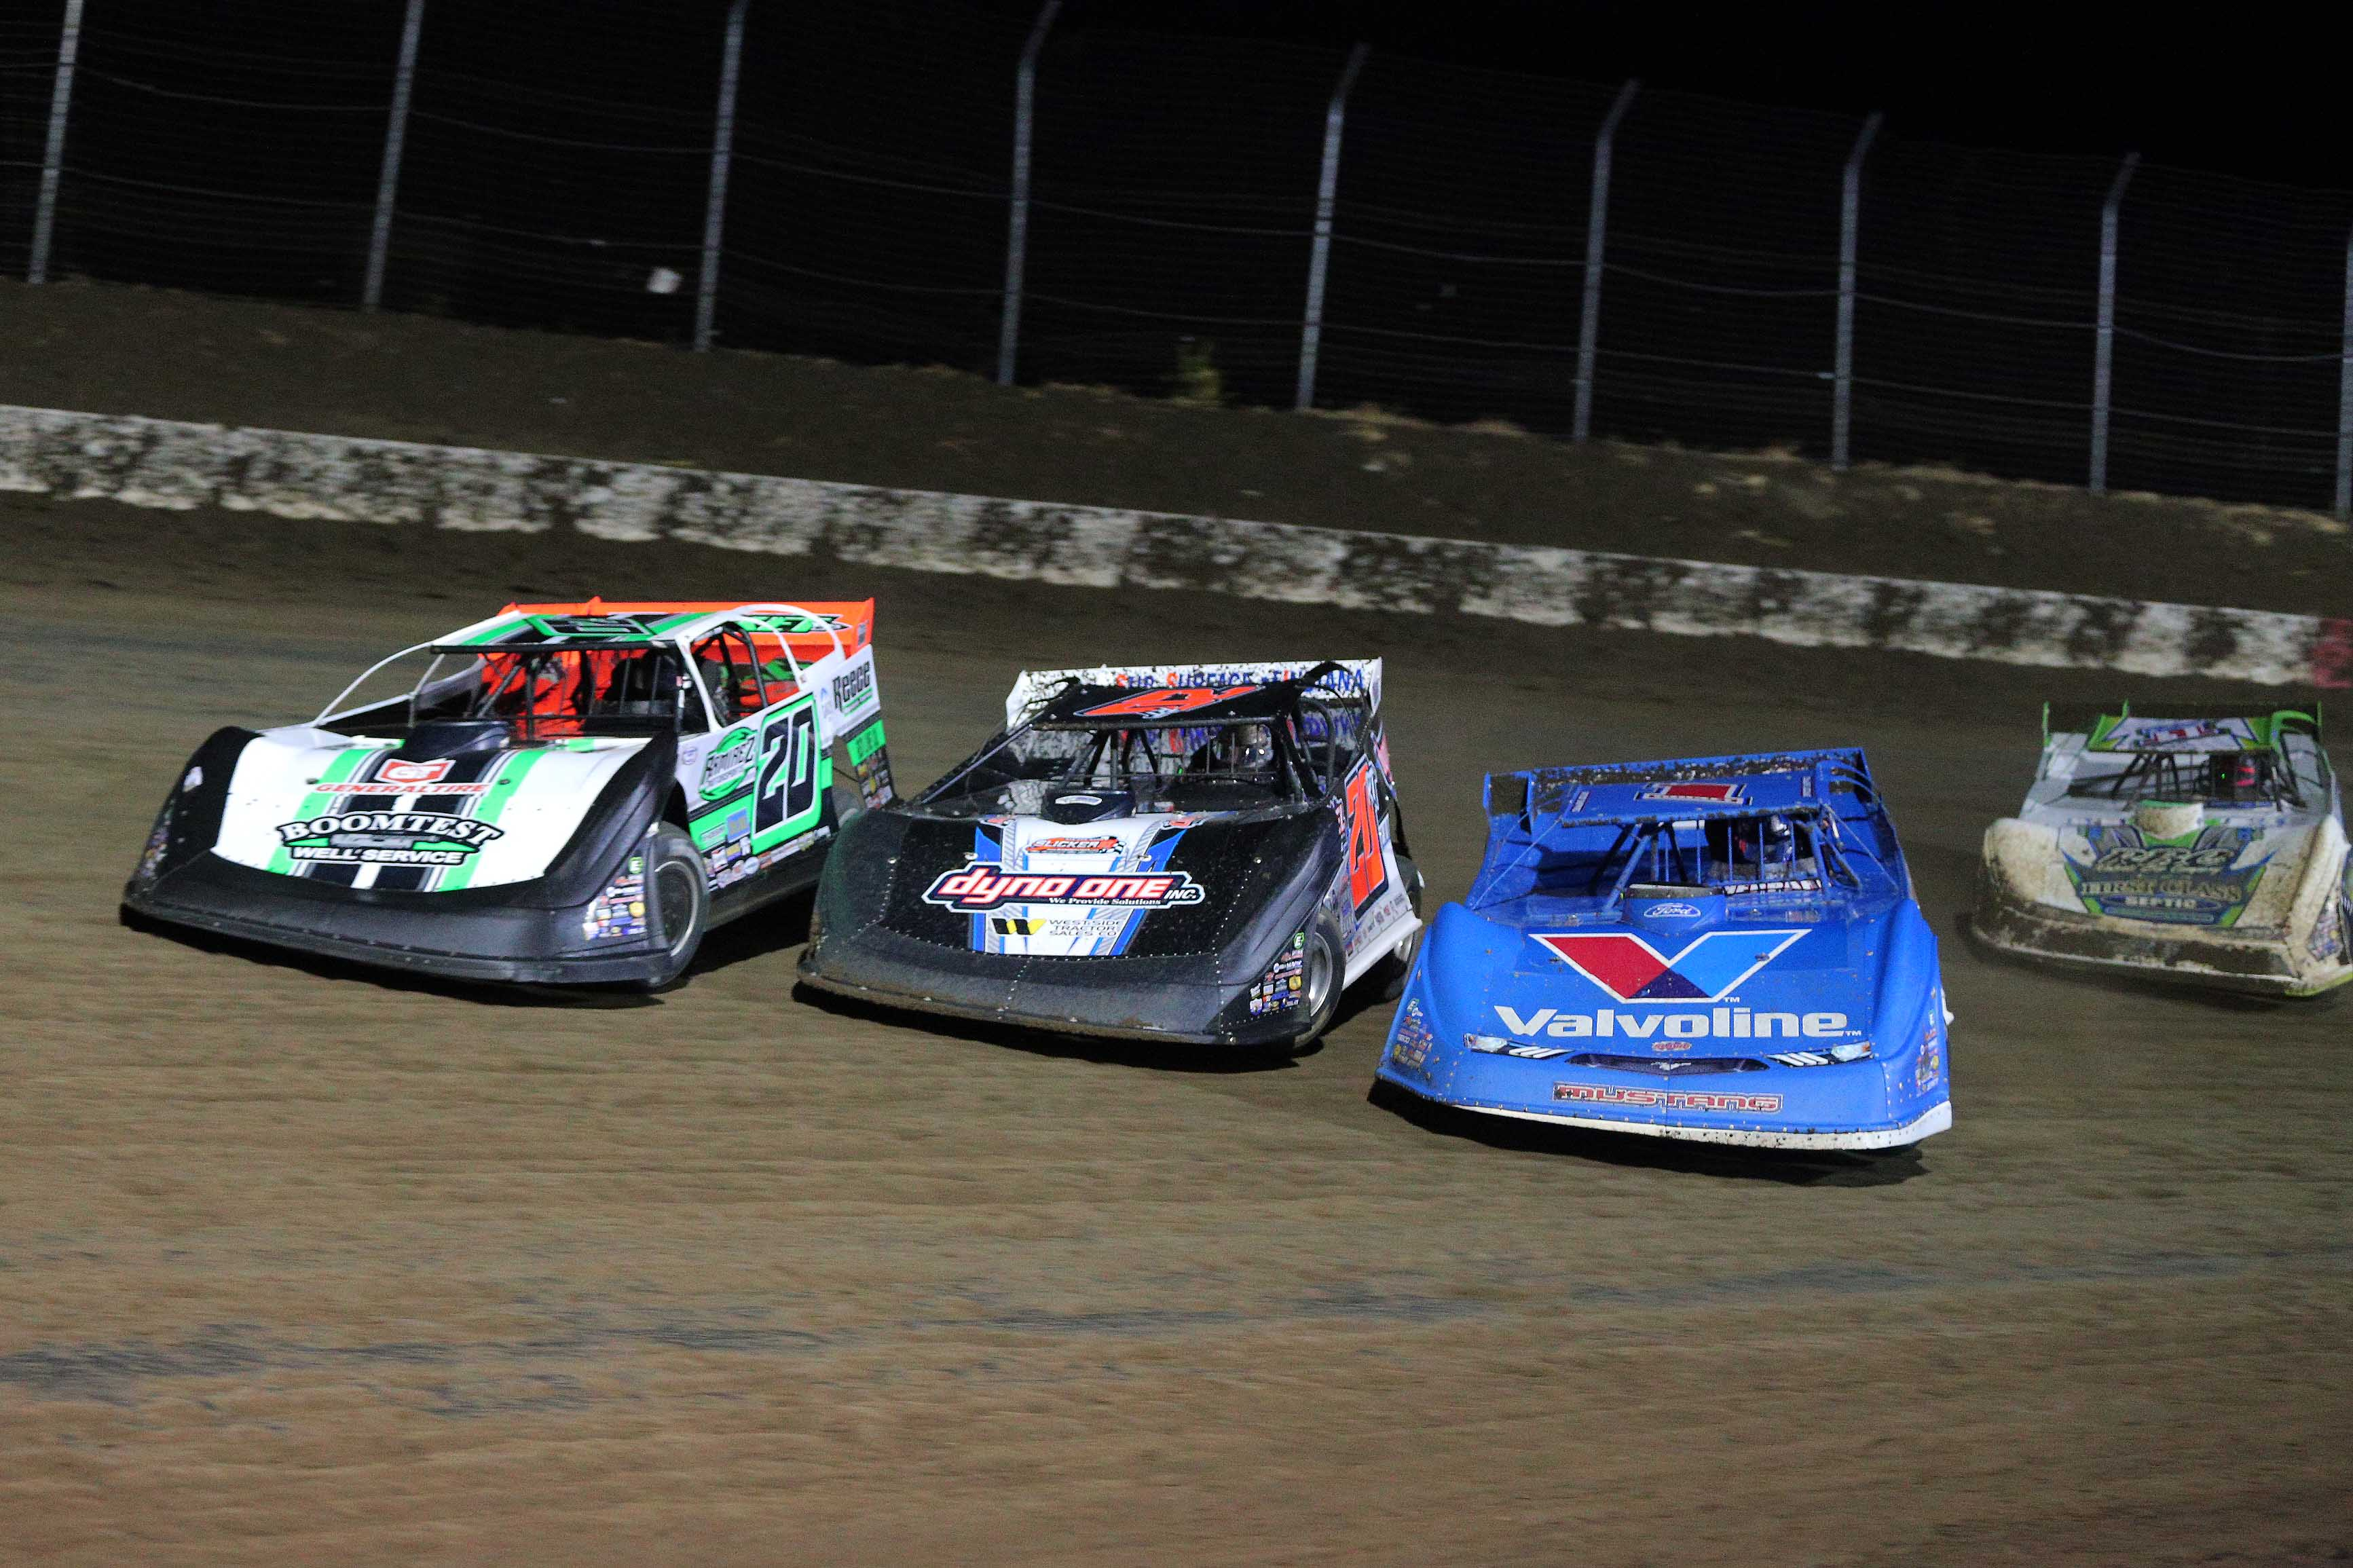 Brandon Sheppard, Ricky Thornton Jr and Jimmy Owens in the Silver Dollar Nationals at I-80 Speedway - Lucas Dirt 0344